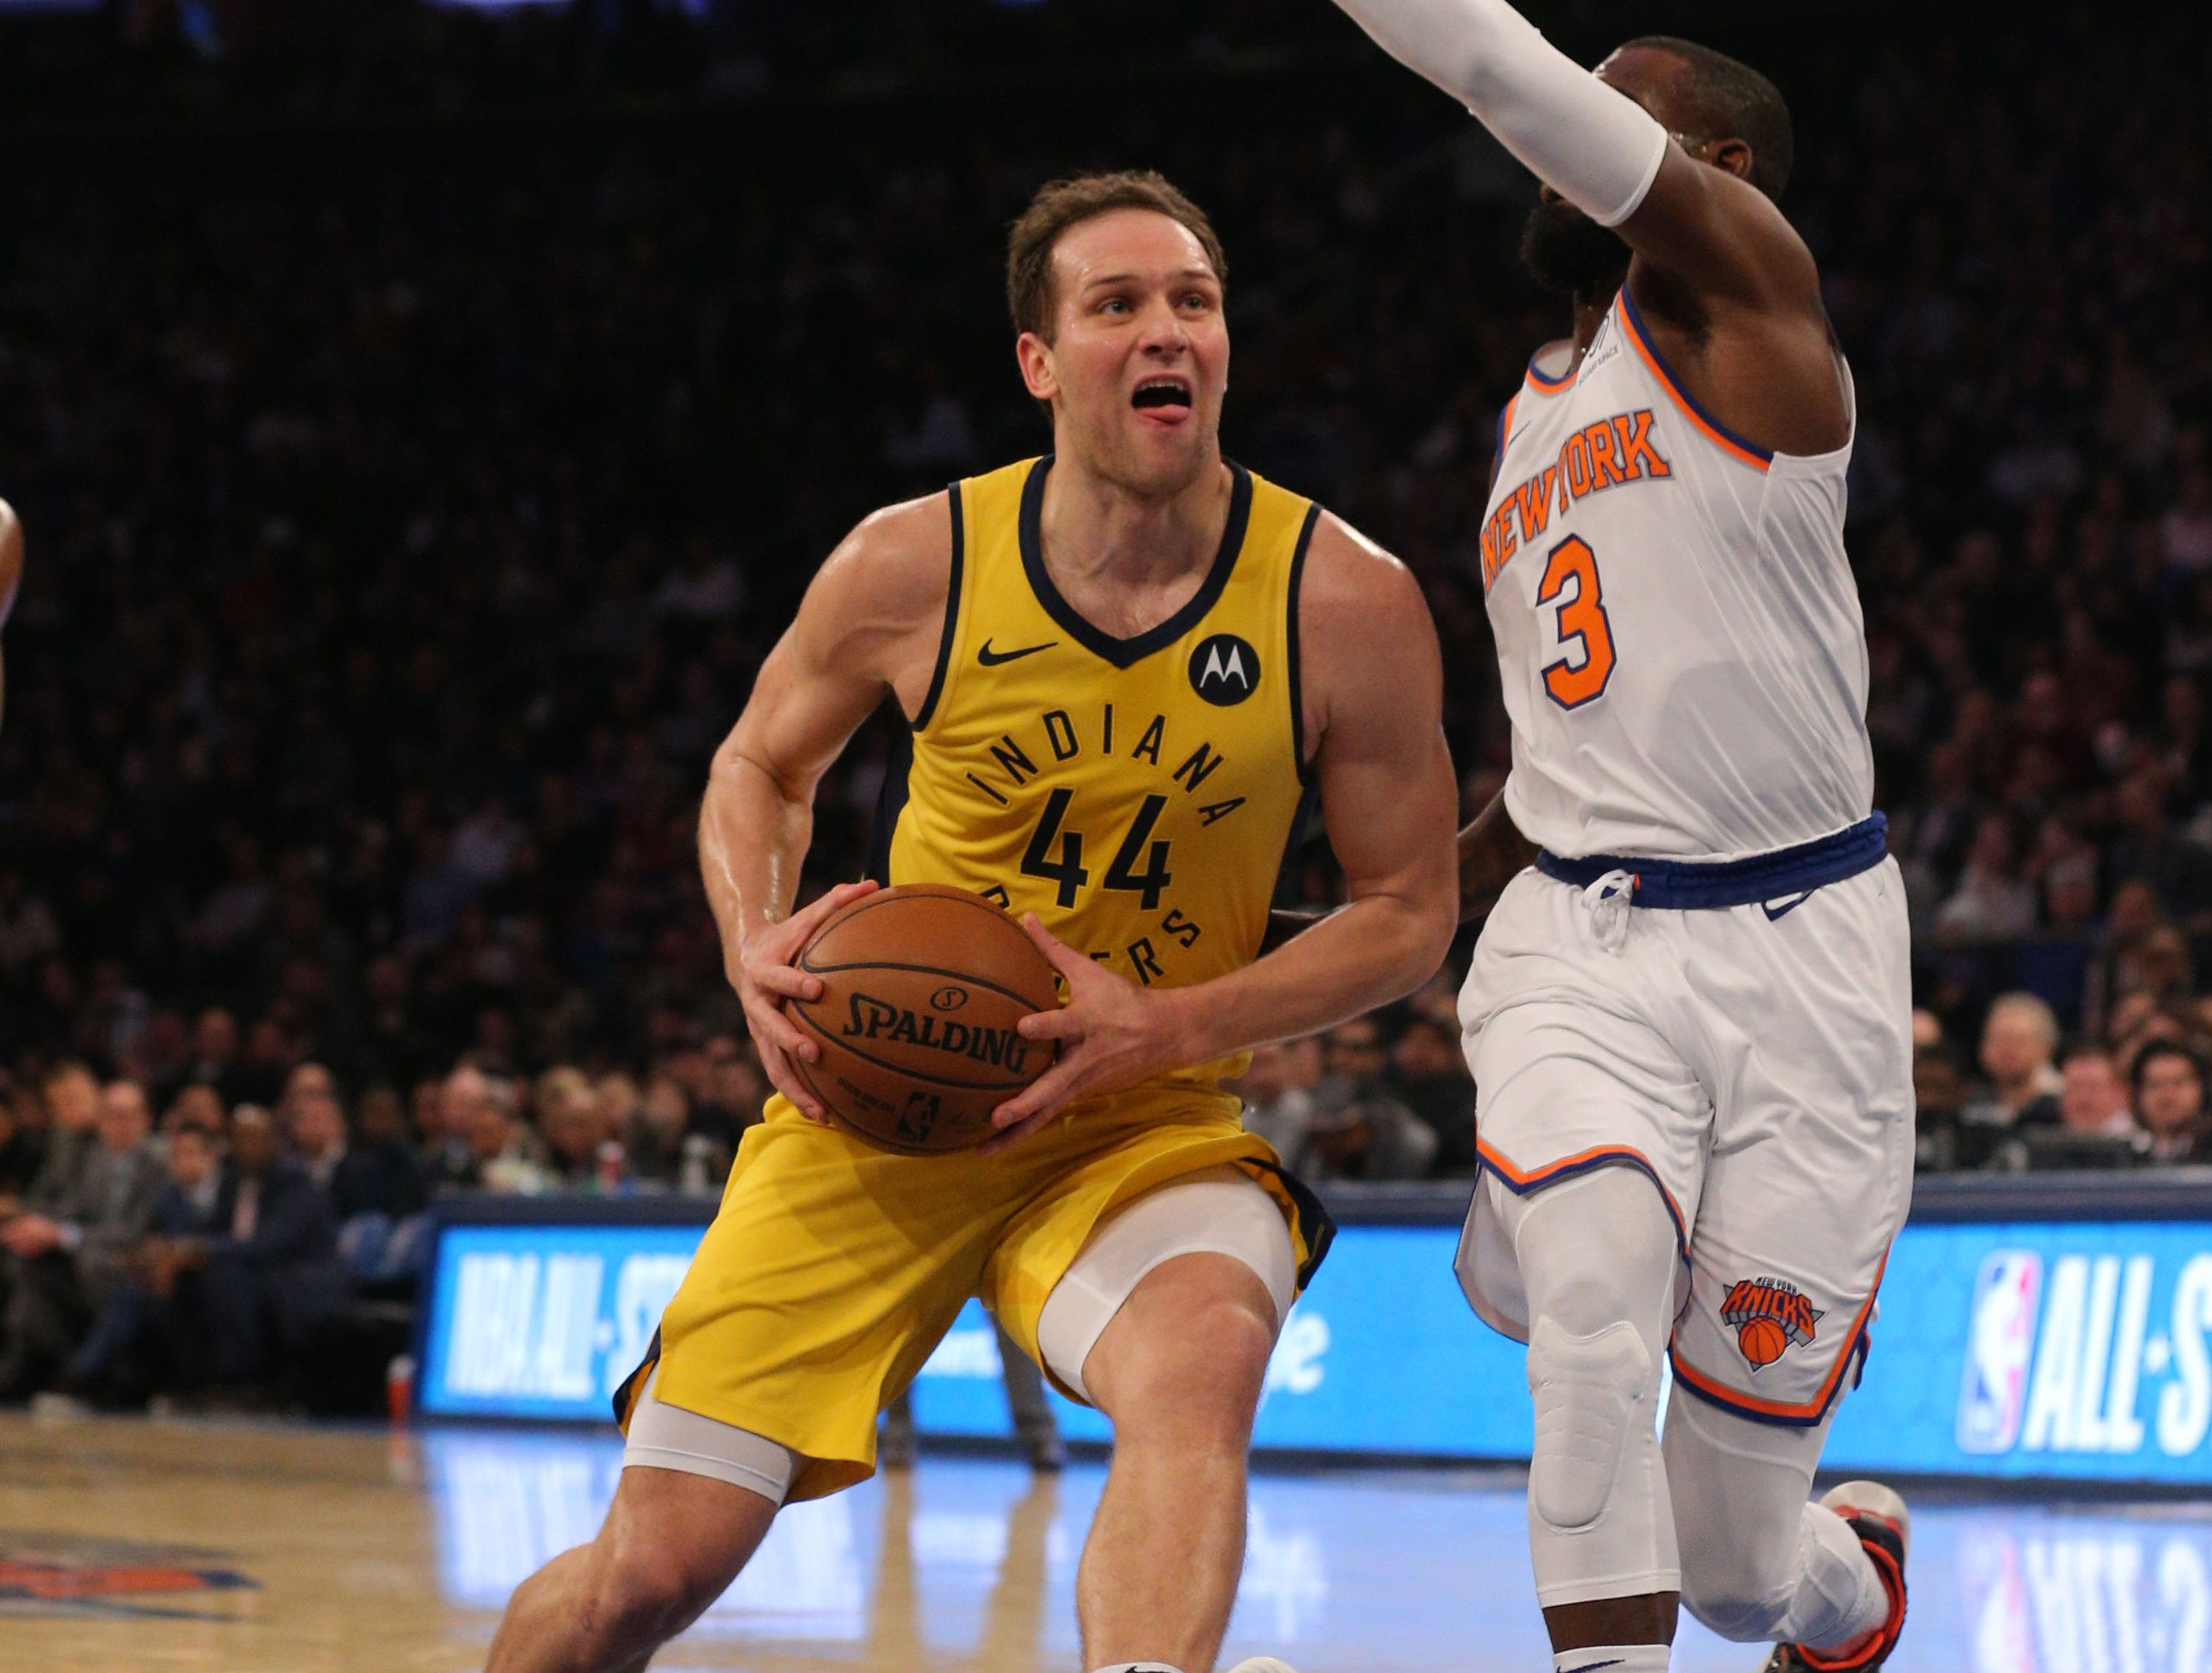 Jan 11, 2019; New York, NY, USA; Indiana Pacers forward Bojan Bogdanovic (44) drives to the basket against New York Knicks guard Tim Hardaway Jr. (3) during the first quarter at Madison Square Garden. Mandatory Credit: Brad Penner-USA TODAY Sports